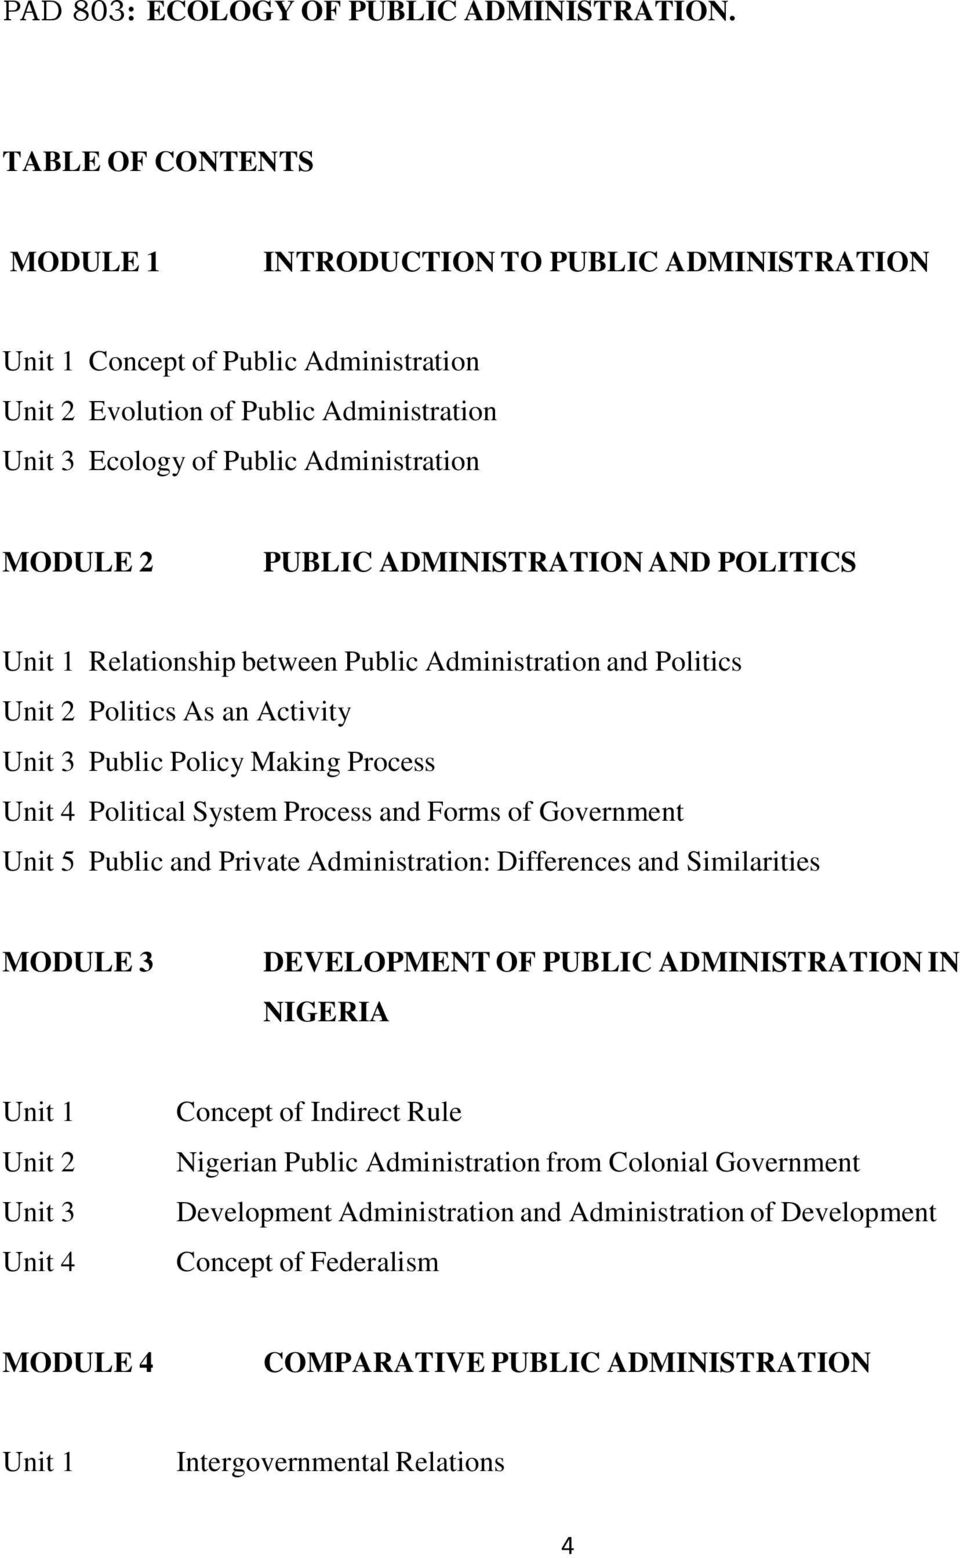 Forms of government. Public administration system 51